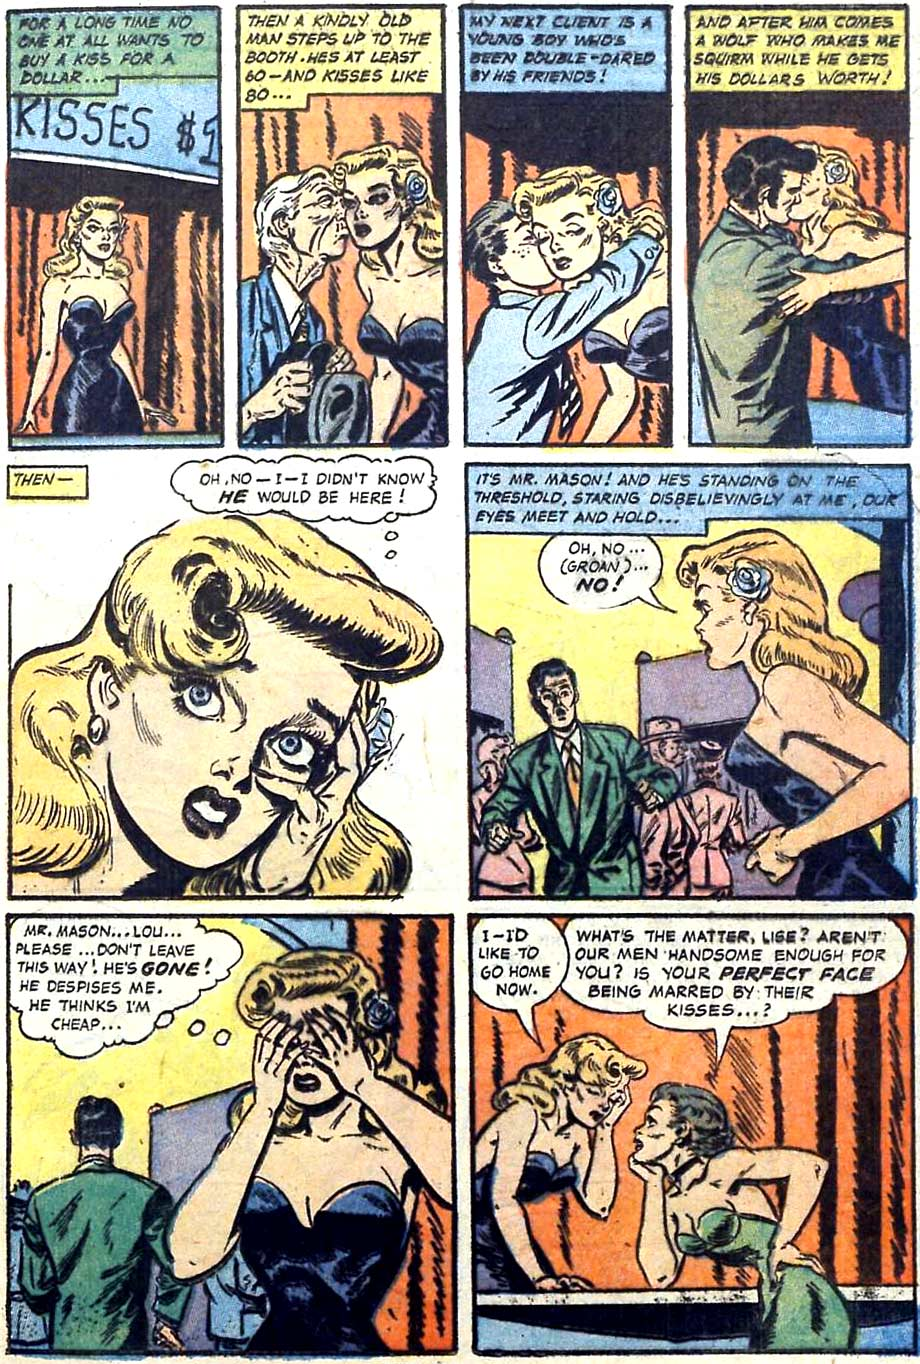 A page from Great Lover Romance #14, 1954. Artist unknown.